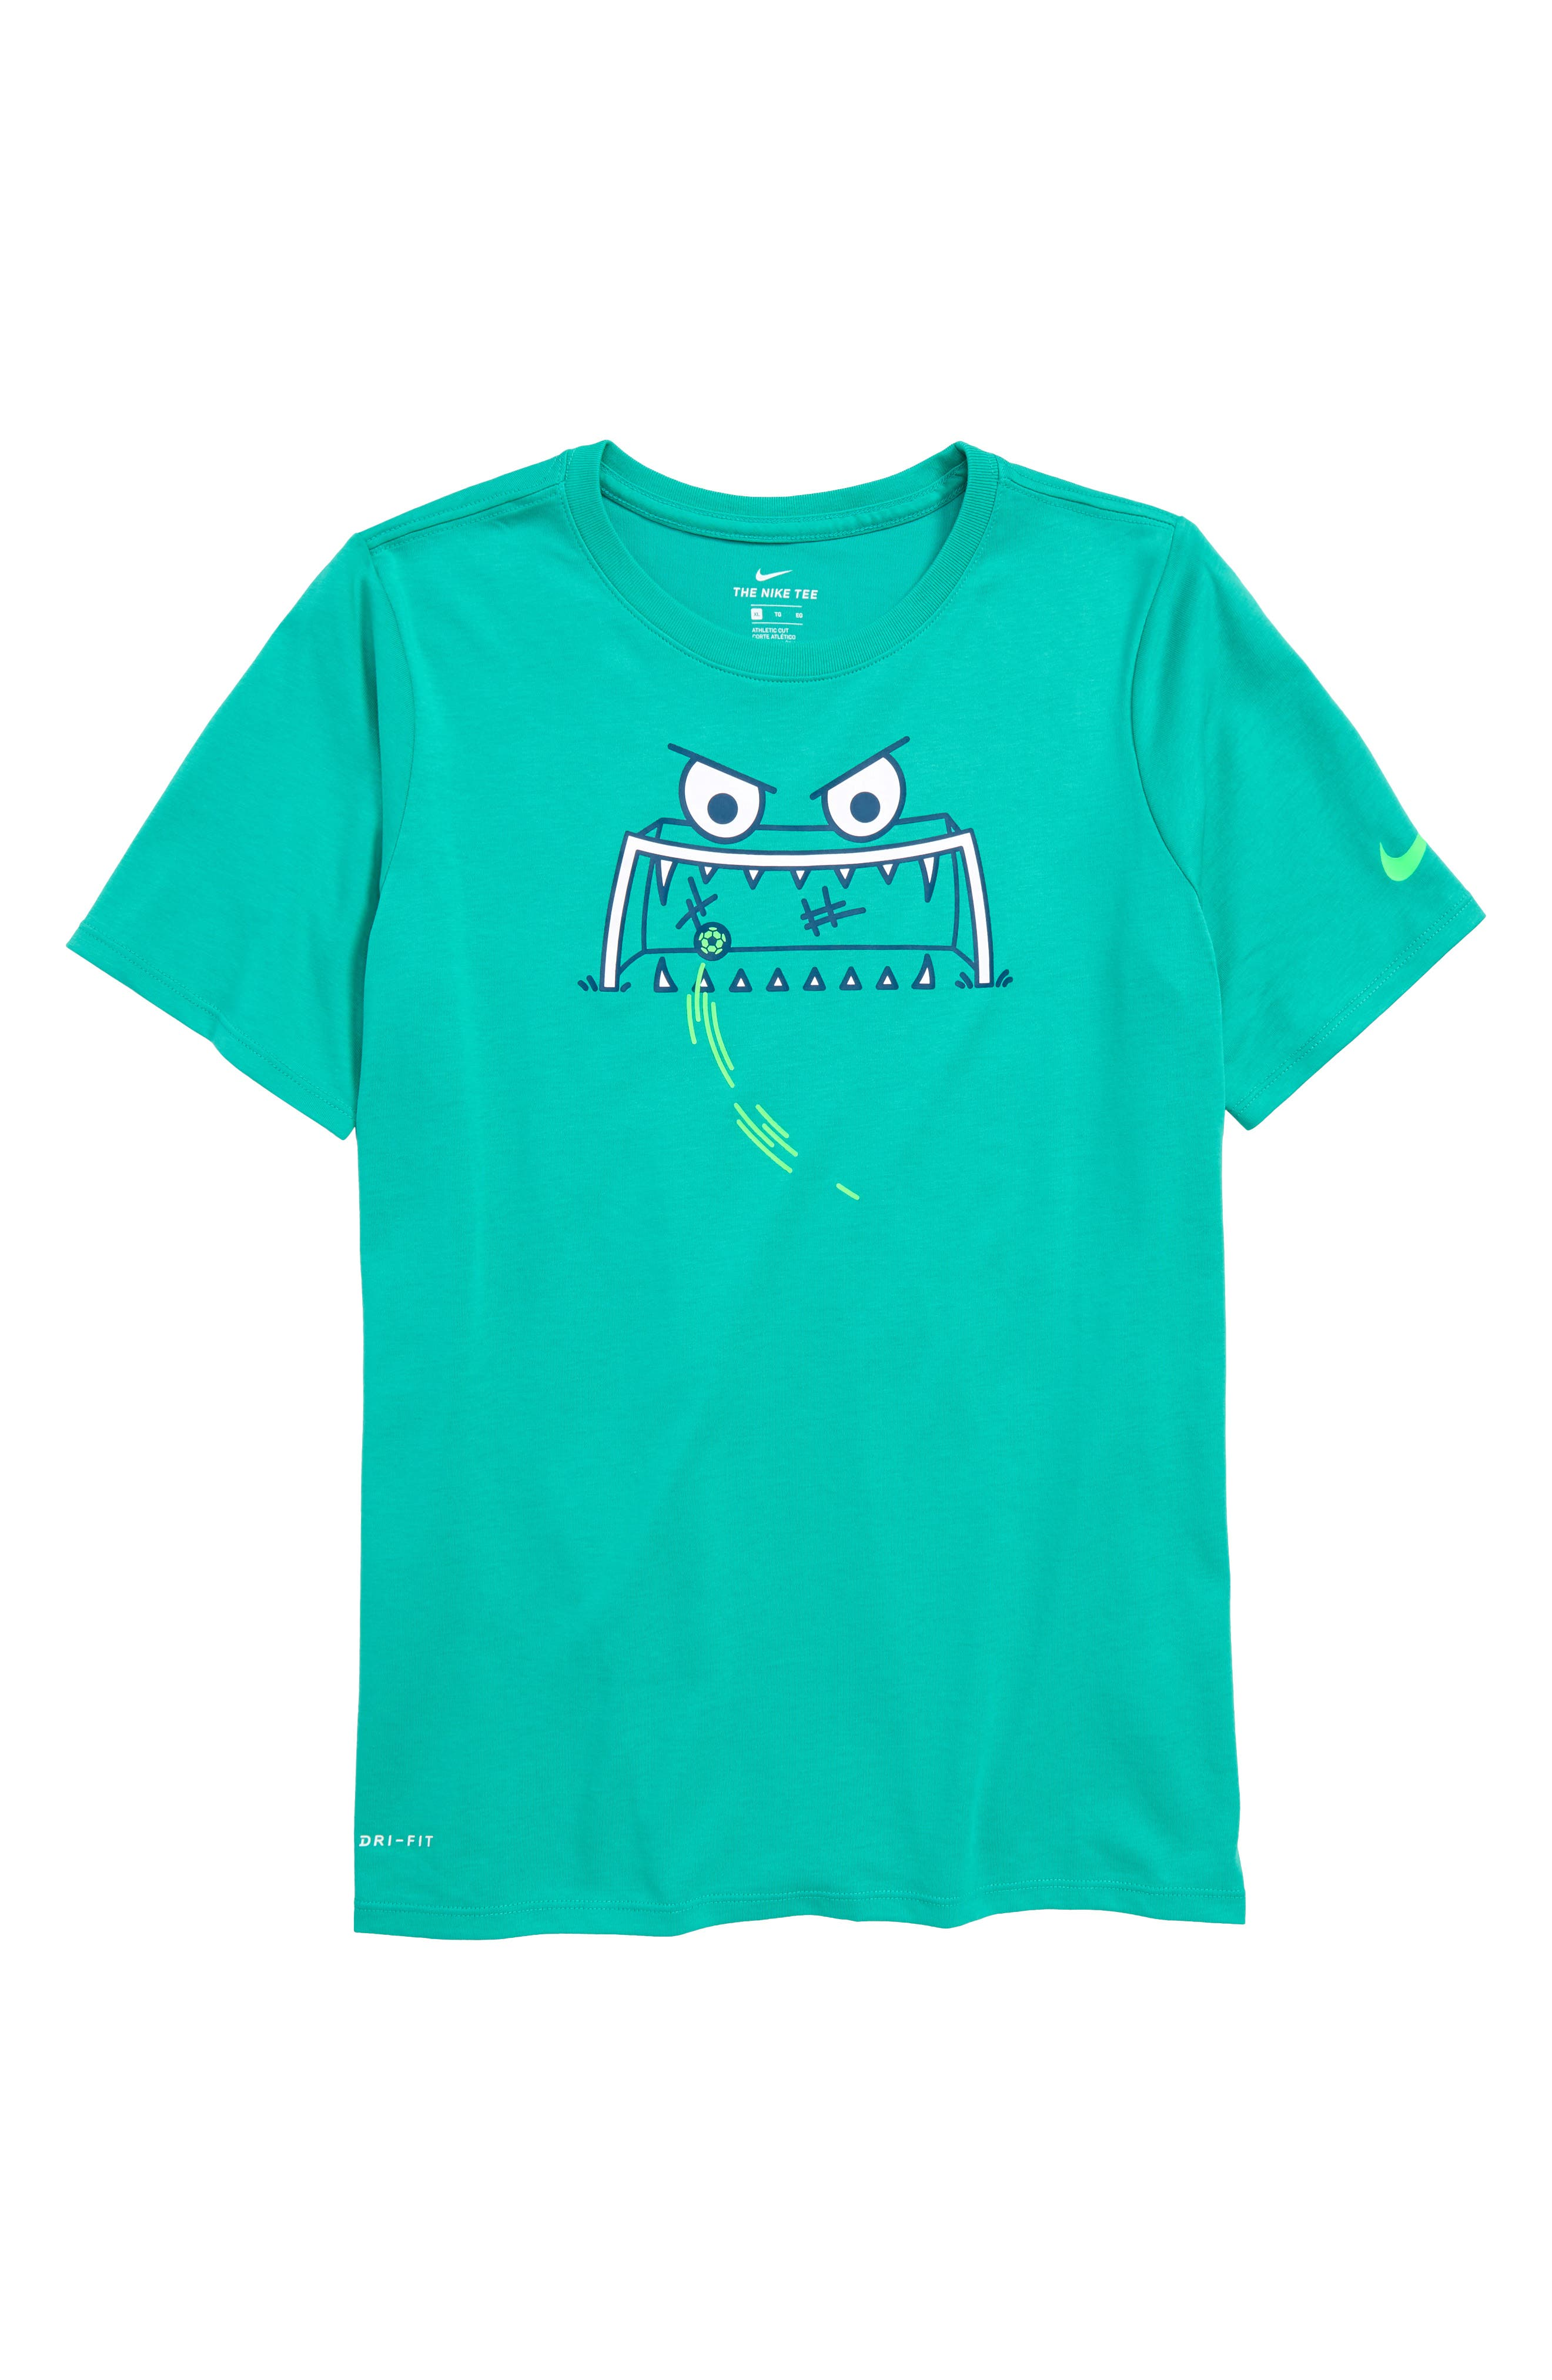 Dry Feed the Goal Graphic T-Shirt,                             Main thumbnail 1, color,                             Kinetic Green